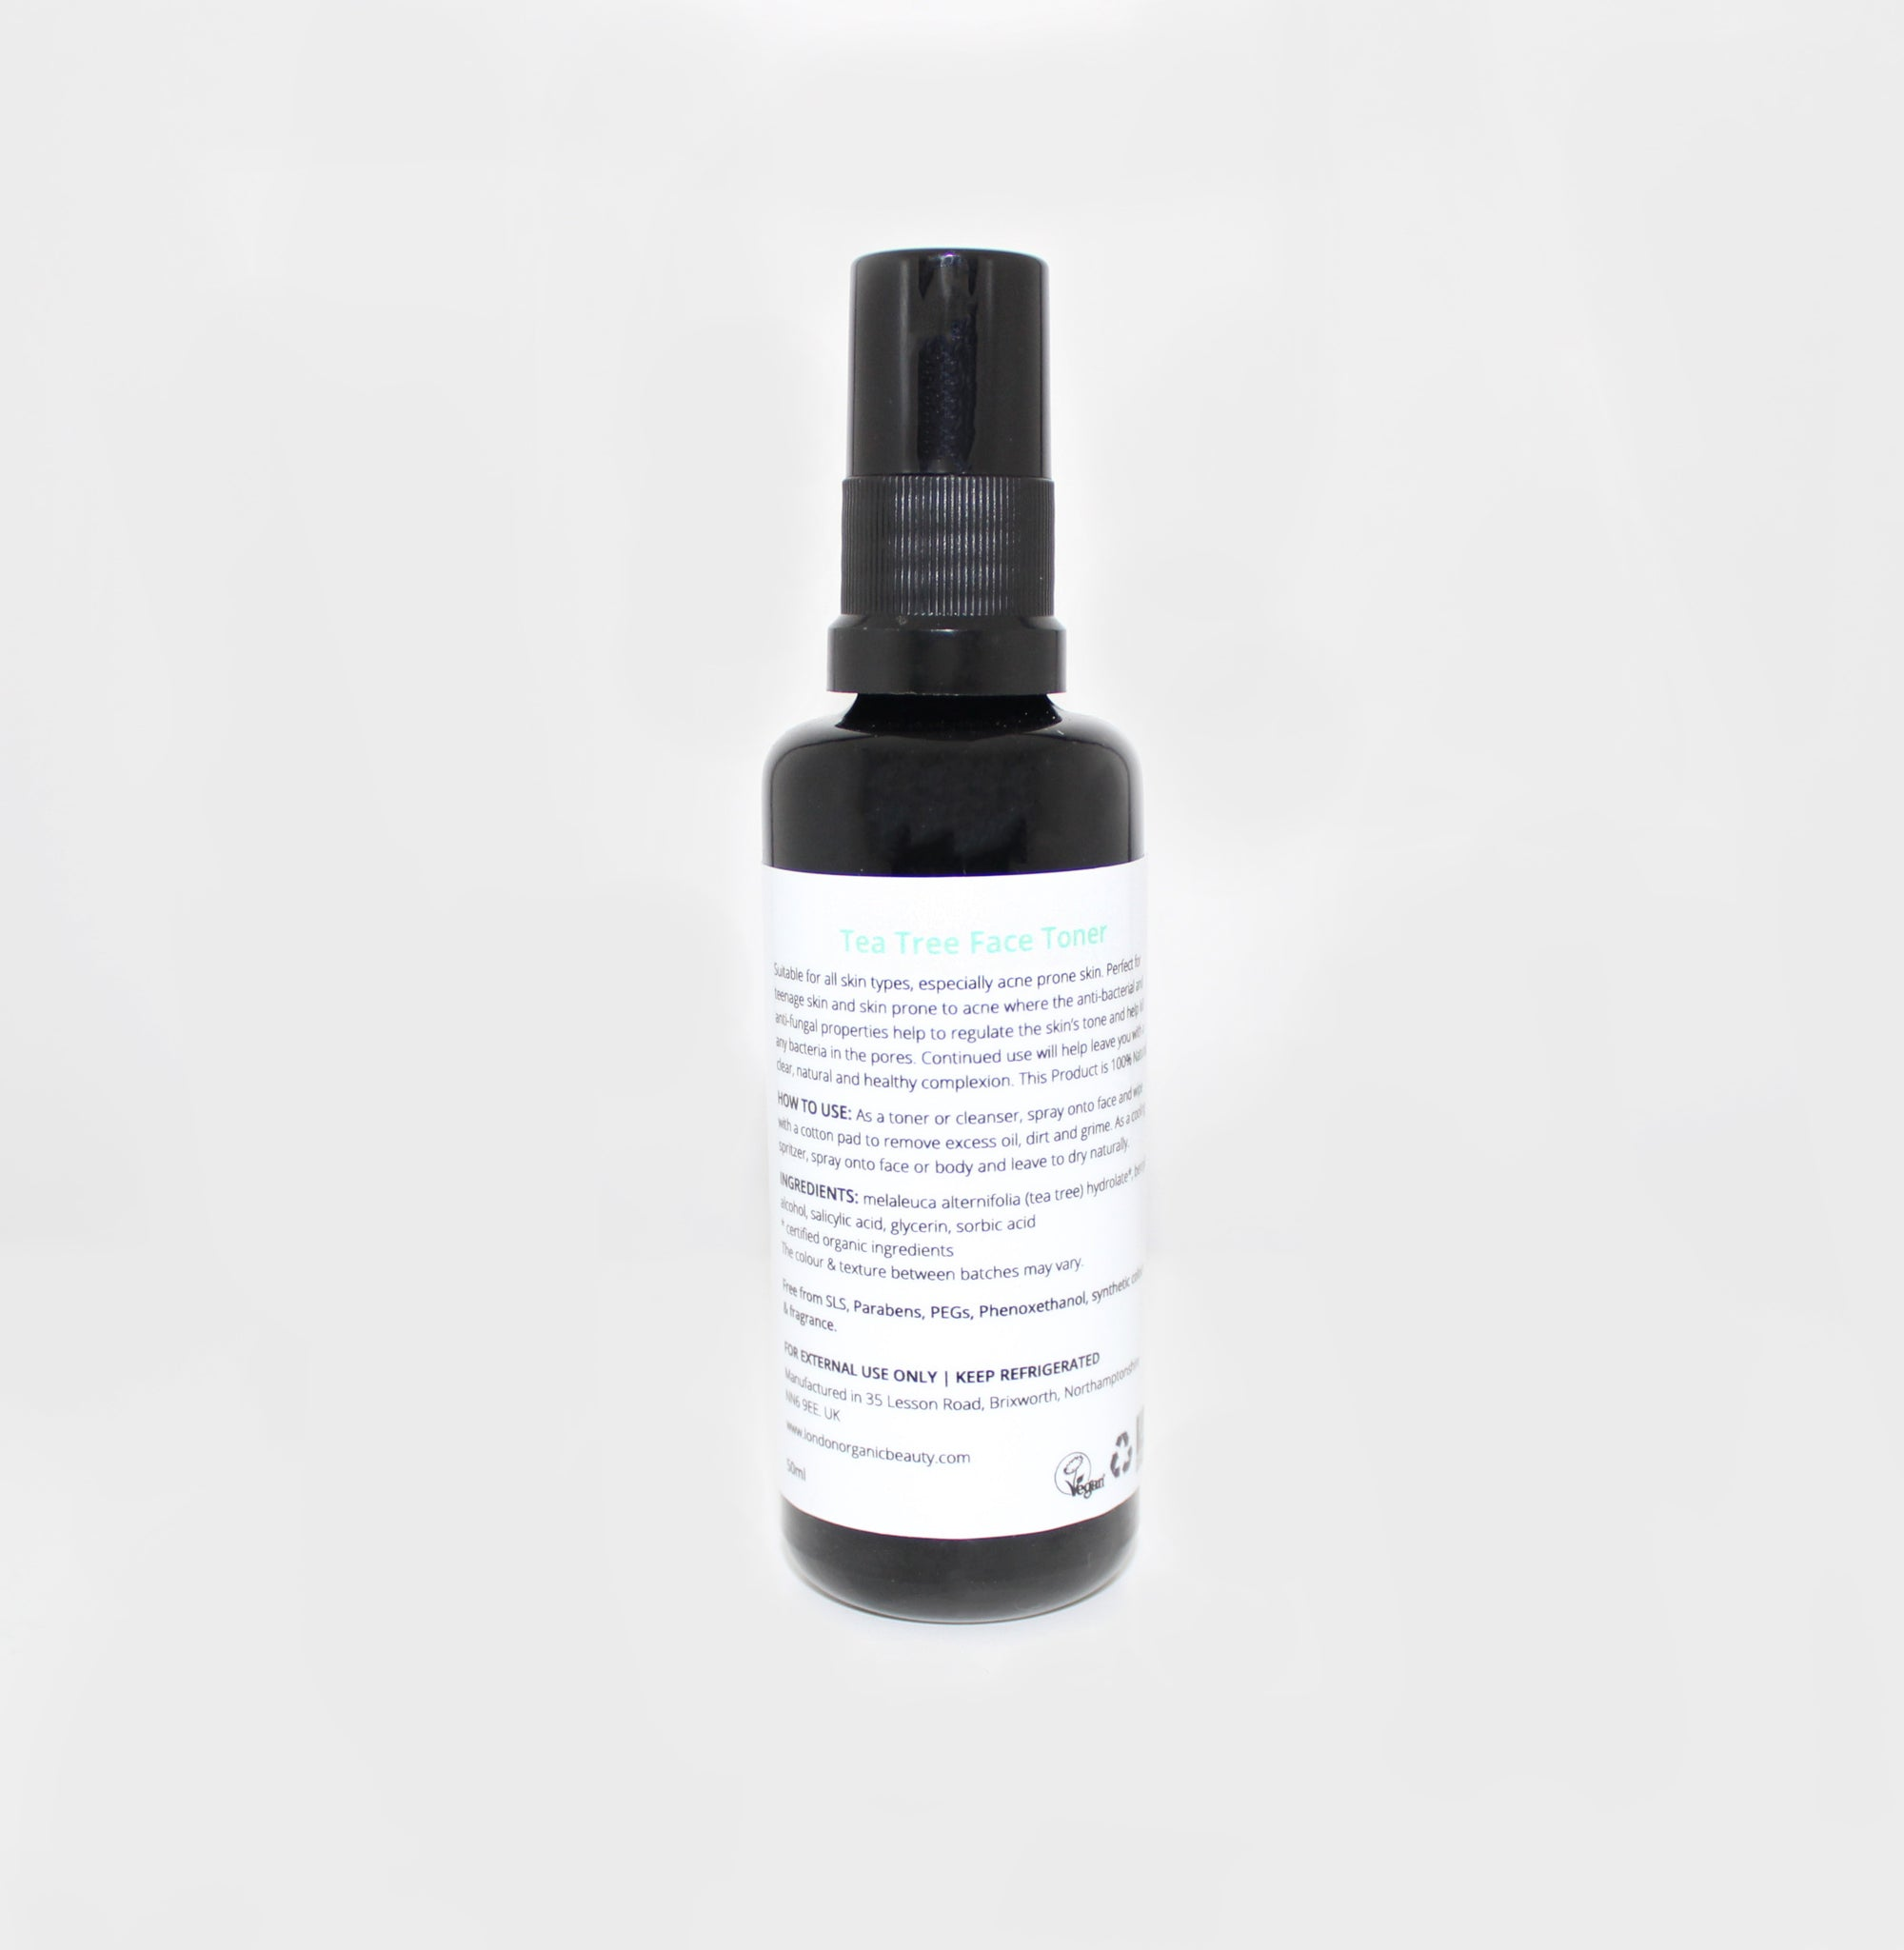 Tea Tree Face Toner (Oily)